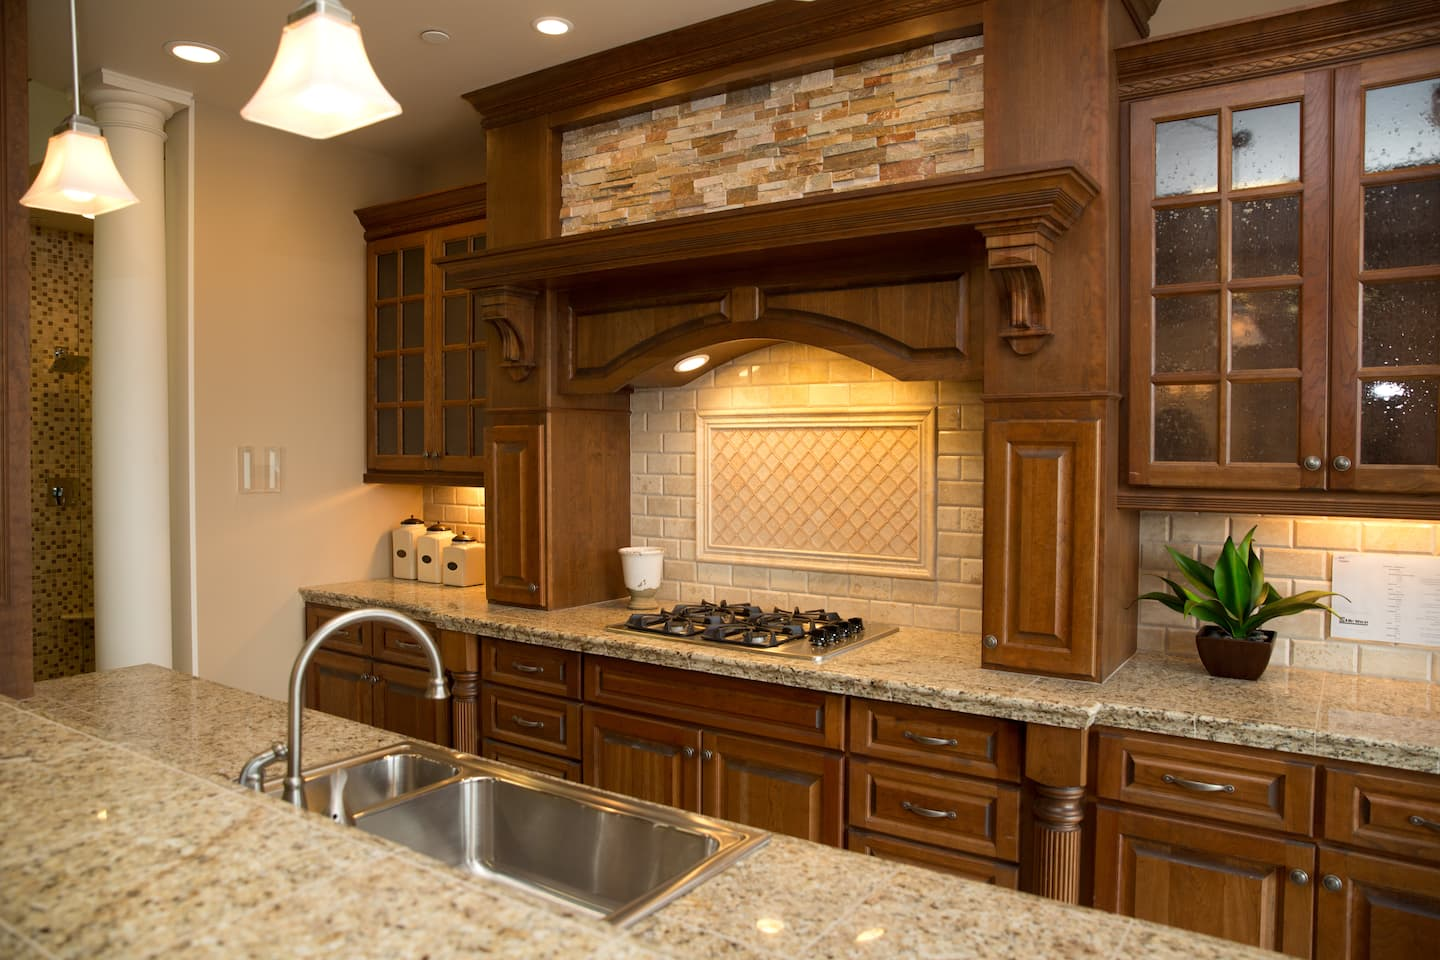 countertops s coralcoast best counterop granite columbus marble quartz ohio countertop